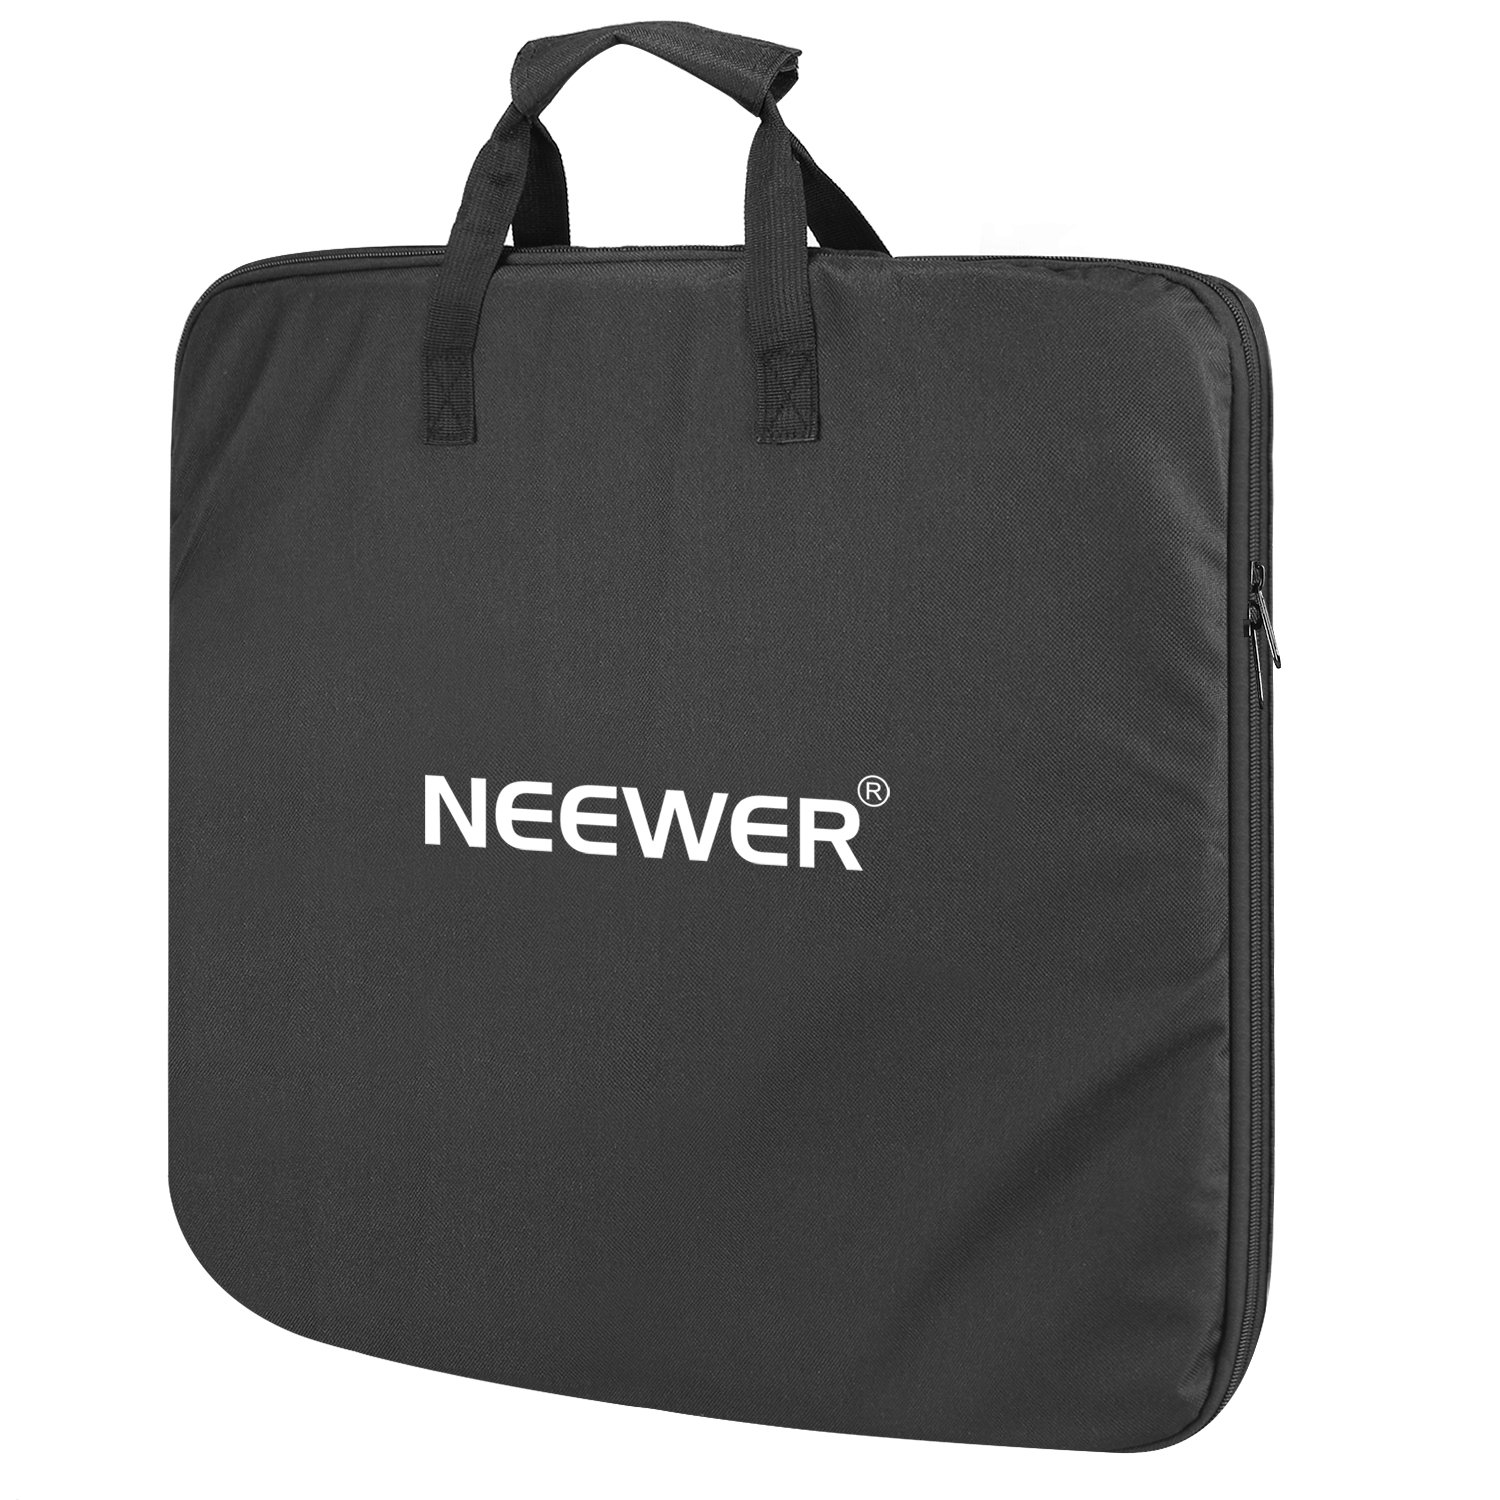 Neewer Enlarged Carrying Bag for 18 inches Ring Light - 29.5x23.6 inches/75x60 Centimeters Protective Case, Durable Nylon, Light Weight (Black) 10094210